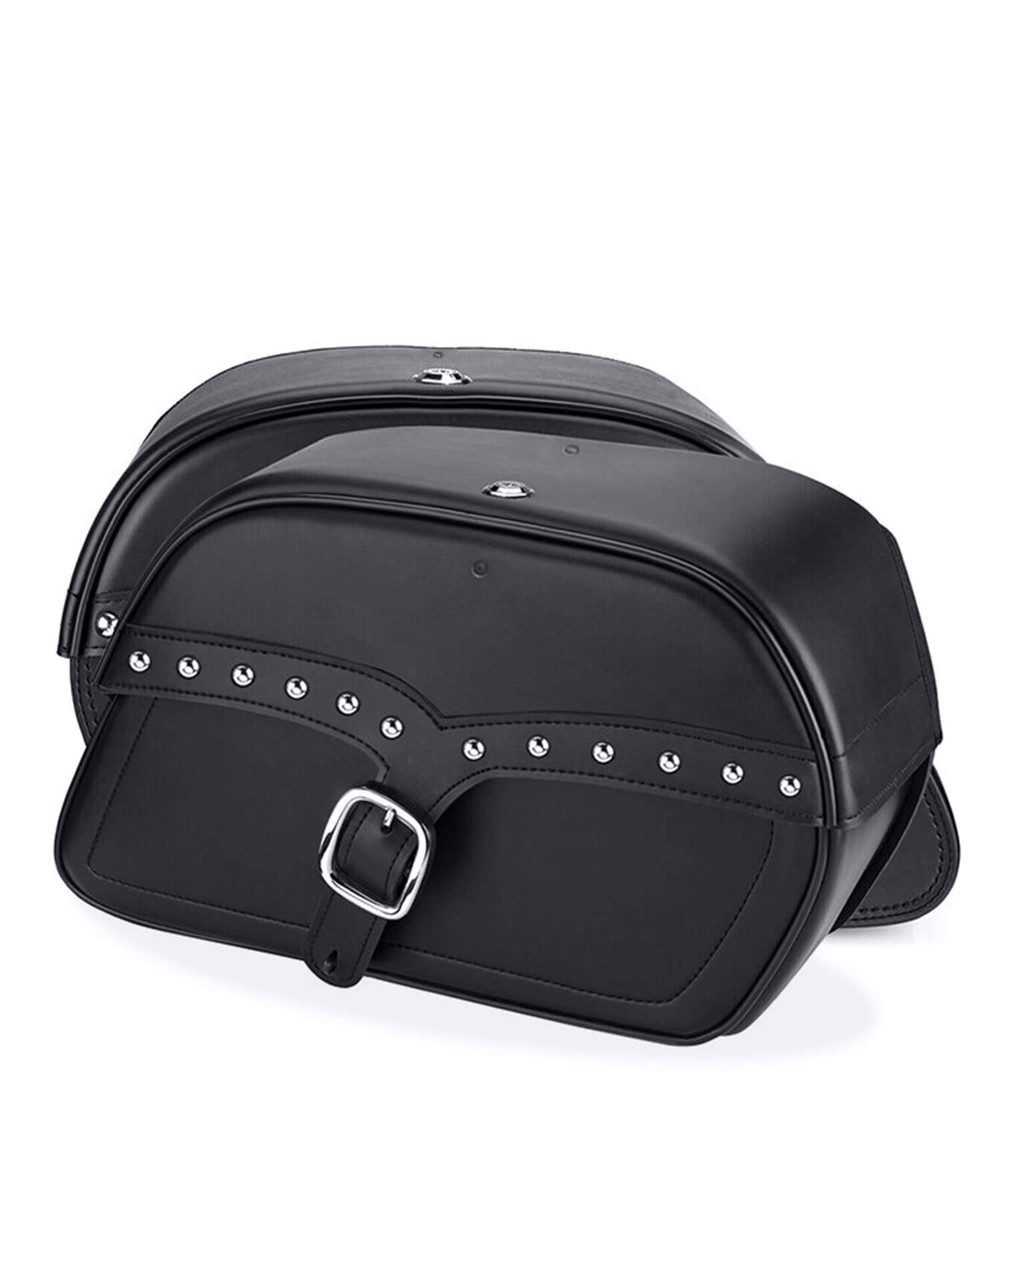 Victory Boardwalk Charger Single Strap Studded Motorcycle Saddlebags Both Bags View